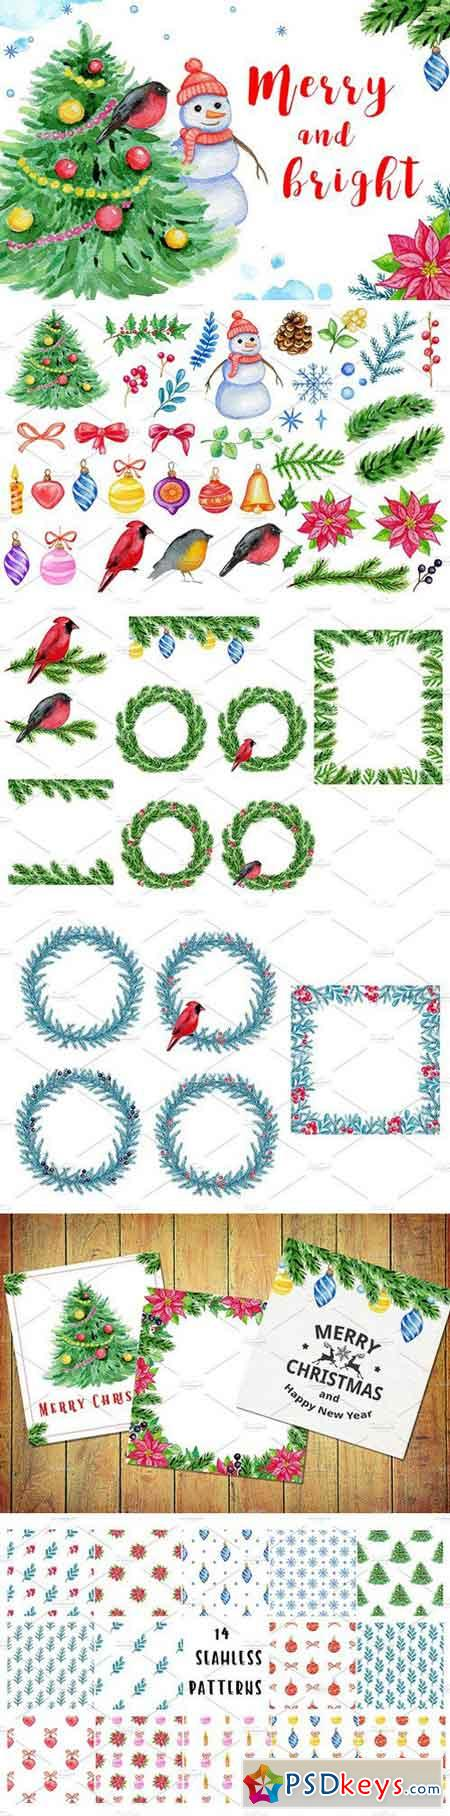 Merry and bright design kit 2103144